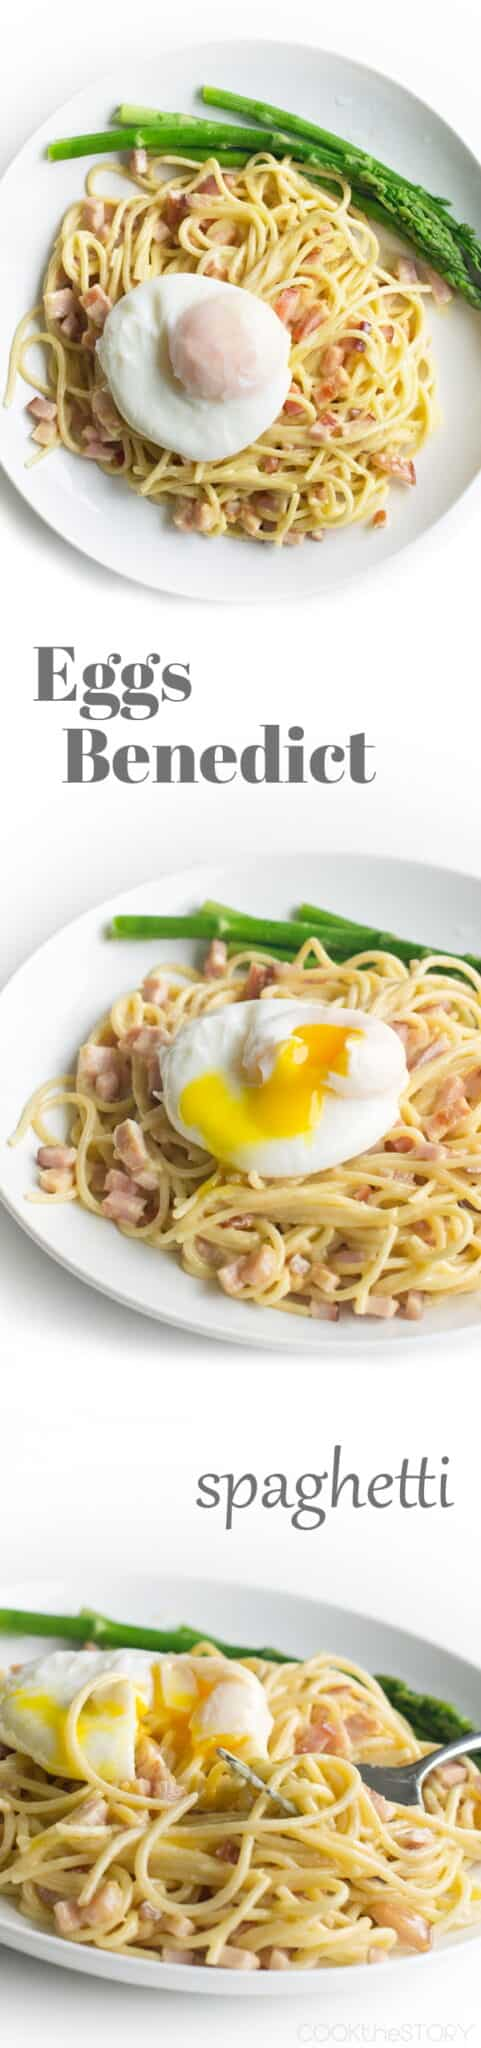 Eggs Benedict Spaghetti: Pasta tossed with hollandaise and fried Canadian bacon and then topped with a poached egg. Yum!